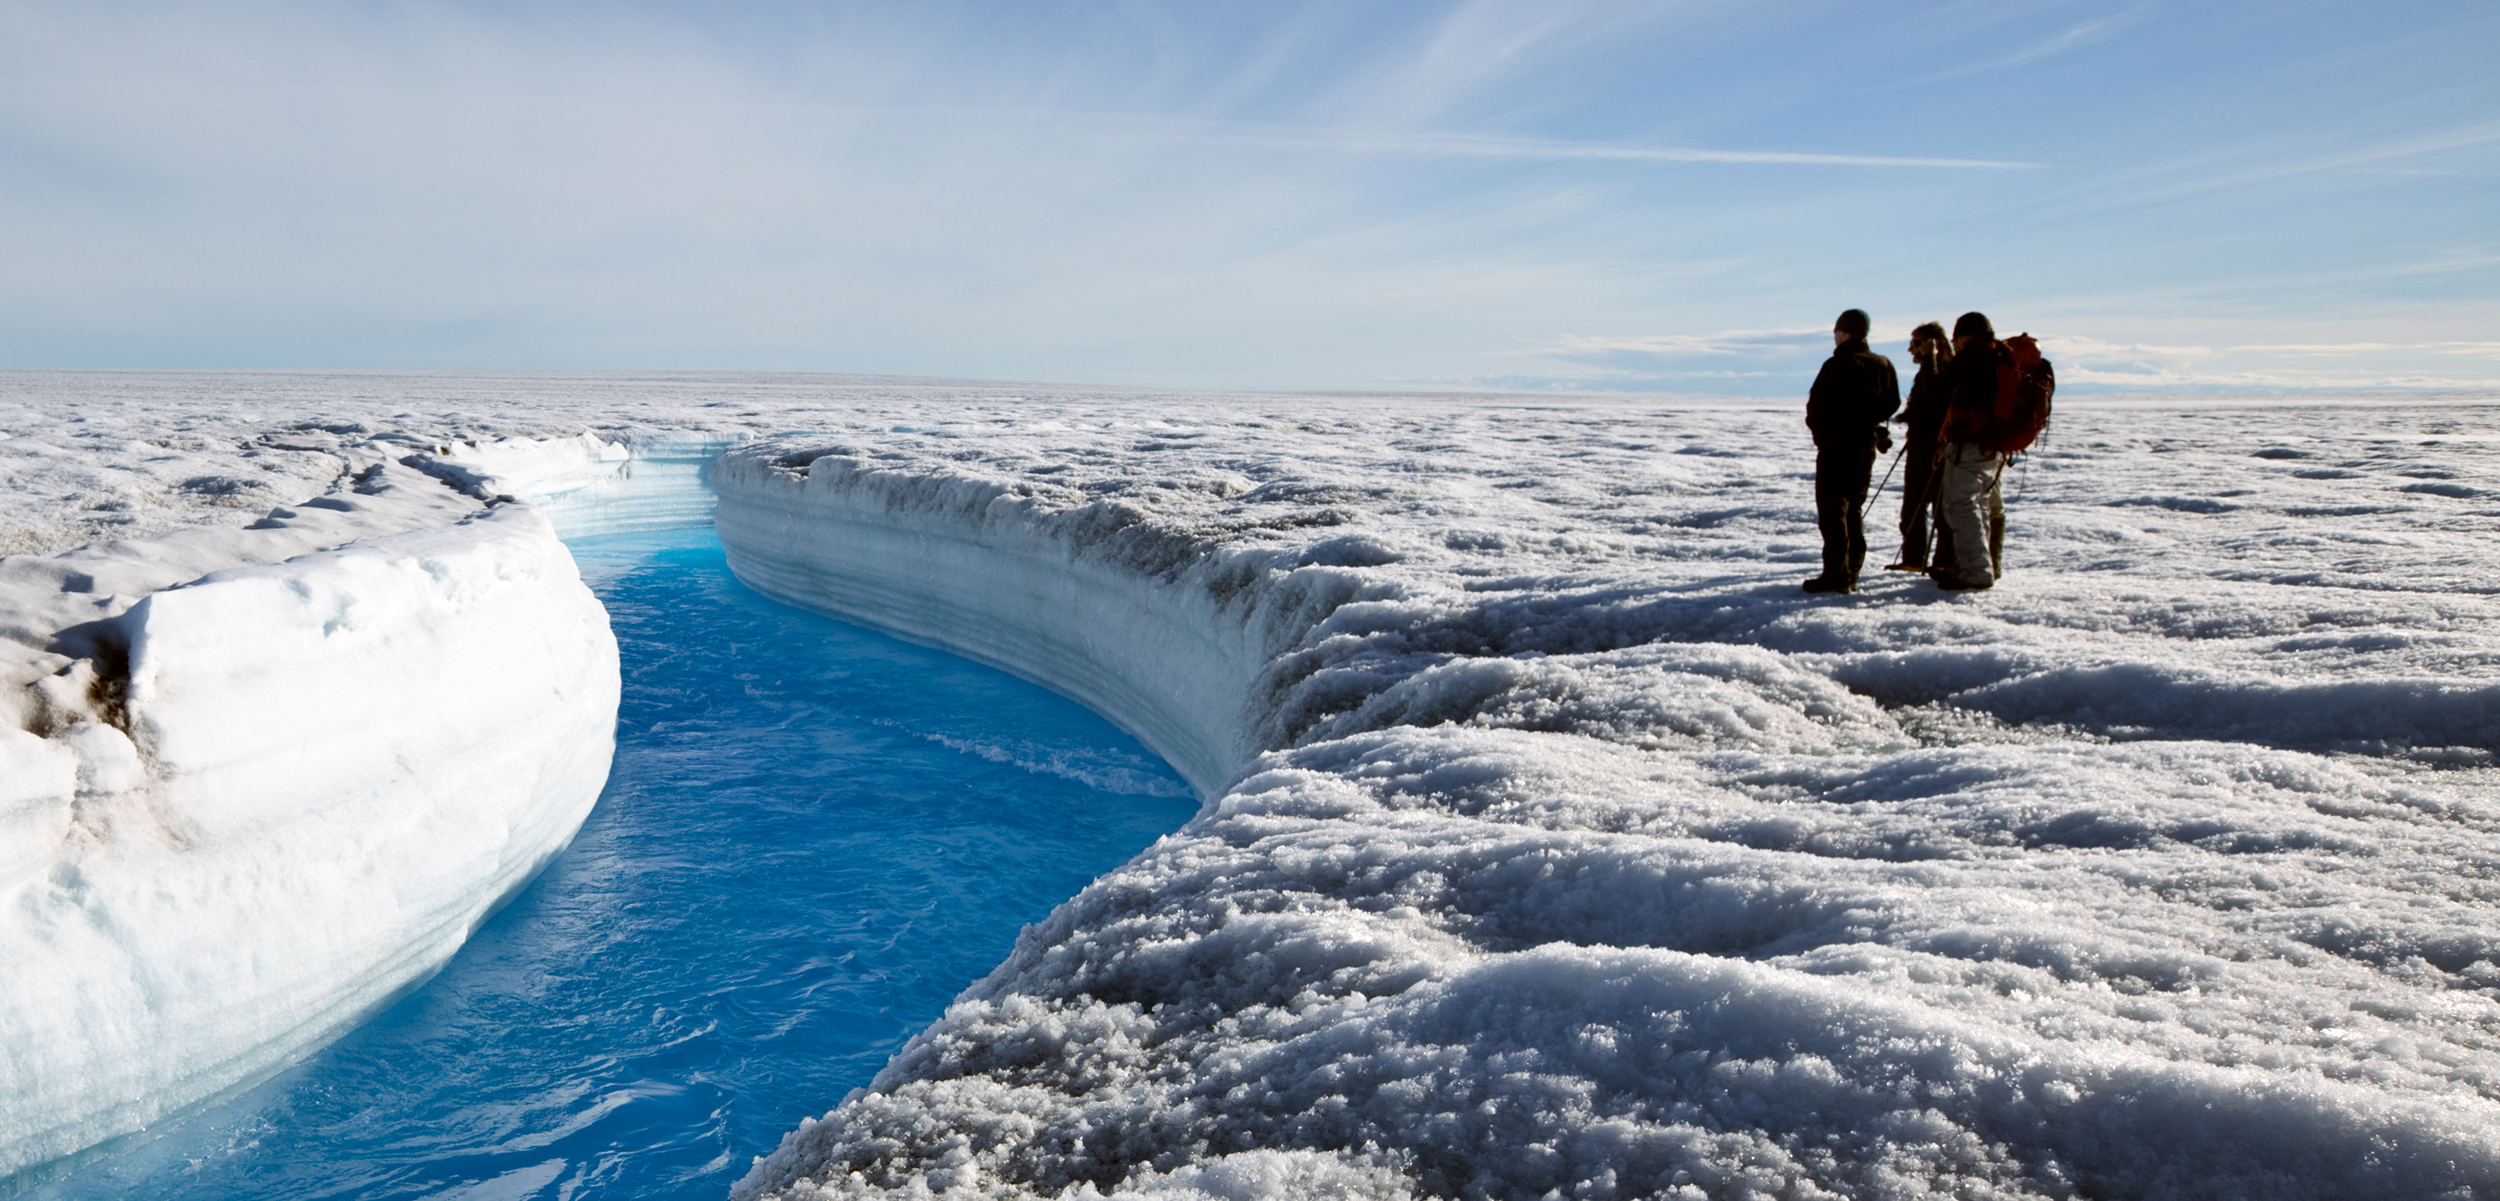 greenland ice melt could push atlantic circulation to collapse